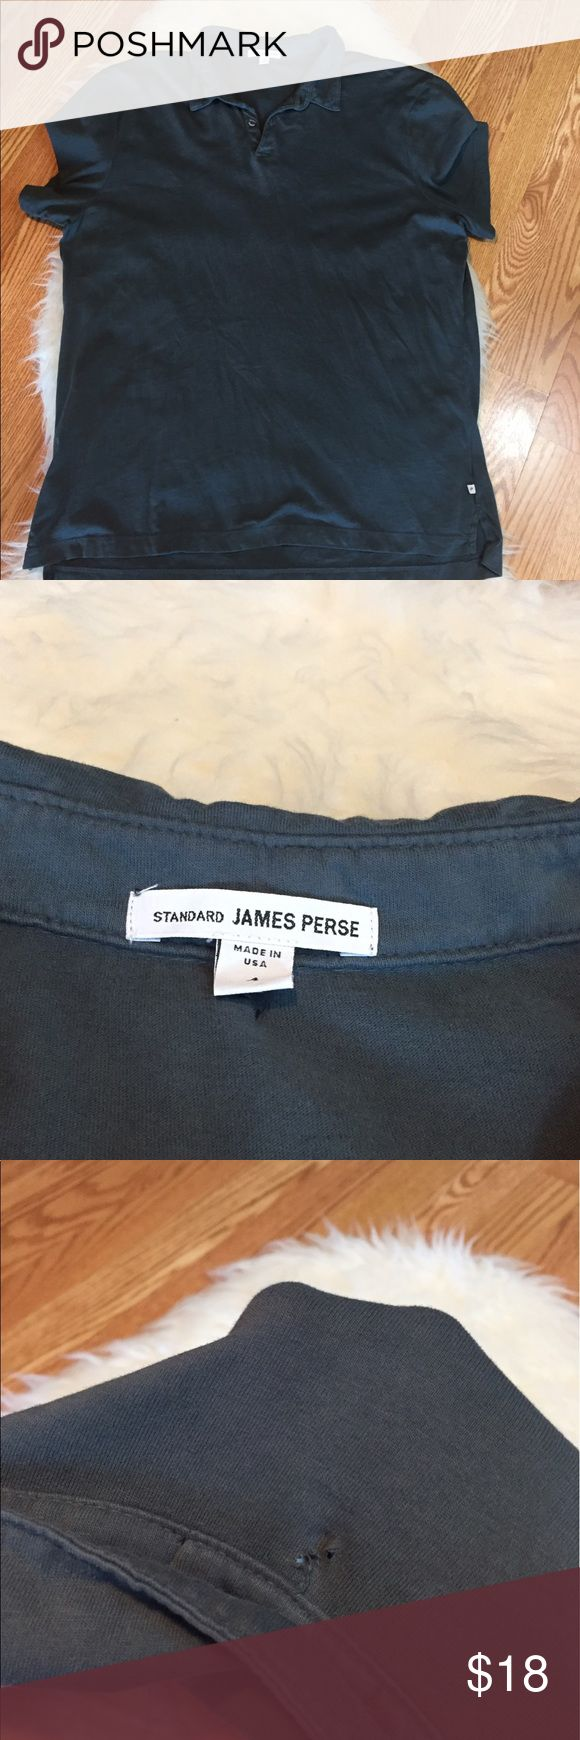 """Standard James Perse Collared Tee Soft, lightweight shirt made of 100% Suprima Cotton. Small holes under collar on back of shirt (as seen in picture). Otherwise in good condition. Measures 24"""" chest (laying flat) and 30"""" length. Size 4 (XL) -slim fit shirt). James Perse Shirts"""